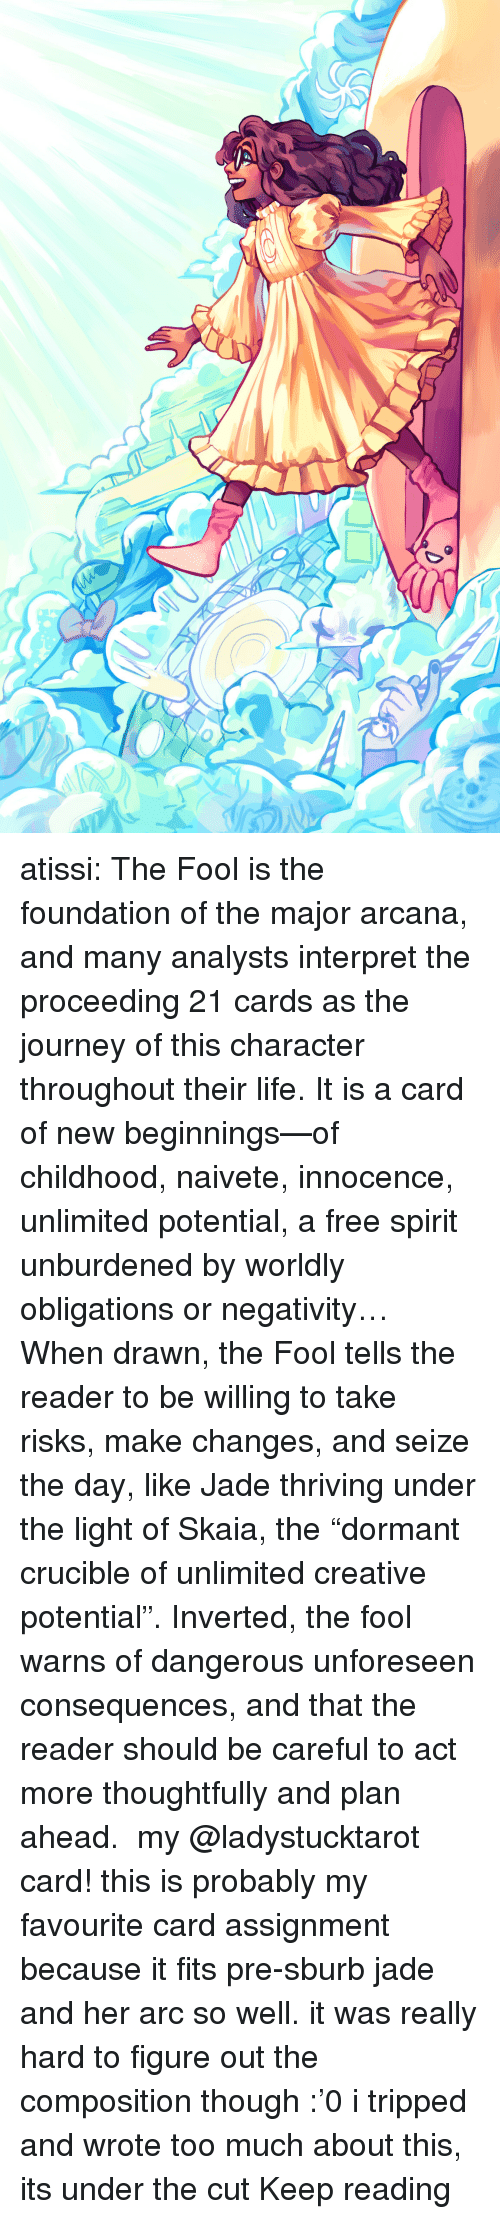 """Obligations: atissi:    The Fool is the foundation of the major arcana, and many analysts interpret the proceeding 21 cards as the journey of this character throughout their life. It is a card of new beginnings—of childhood, naivete, innocence, unlimited potential, a free spirit unburdened by worldly obligations or negativity… When drawn, the Fool tells the reader to be willing to take risks, make changes, and seize the day, like Jade thriving under the light of Skaia, the """"dormant crucible of unlimited creative potential"""". Inverted, the fool warns of dangerous unforeseen consequences, and that the reader should be careful to act more thoughtfully and plan ahead. my @ladystucktarot card! this is probably my favourite card assignment because it fits pre-sburb jade and her arc so well. it was really hard to figure out the composition though :'0 i tripped and wrote too much about this, its under the cut Keep reading"""